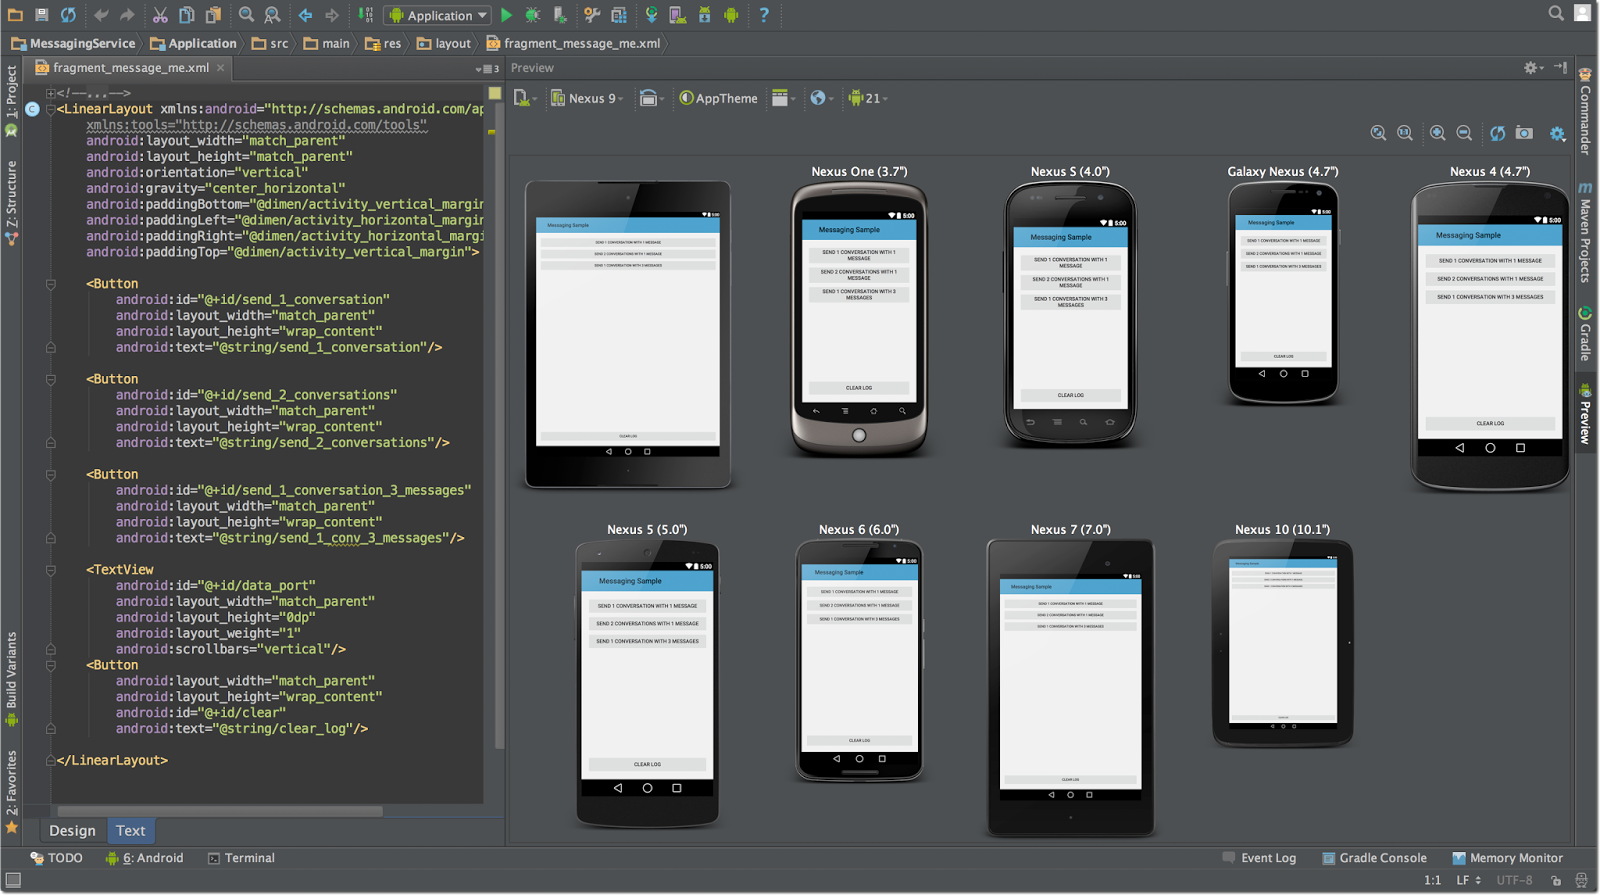 androidstudiomulti-screen_preview.png